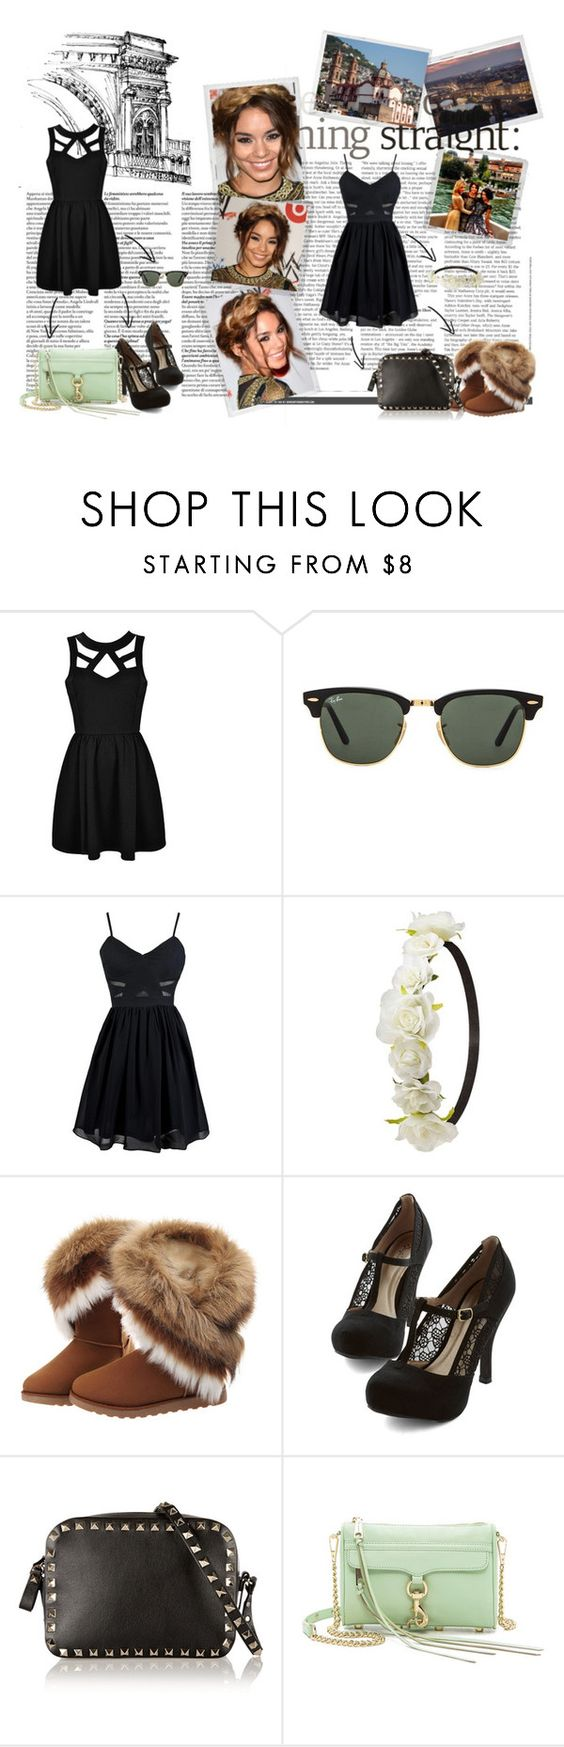 """""""Molto leggiadro"""" by livetarvackert ❤ liked on Polyvore featuring Polaroid, Ally Fashion, Ray-Ban, Charlotte Russe, Valentino and Rebecca Minkoff"""